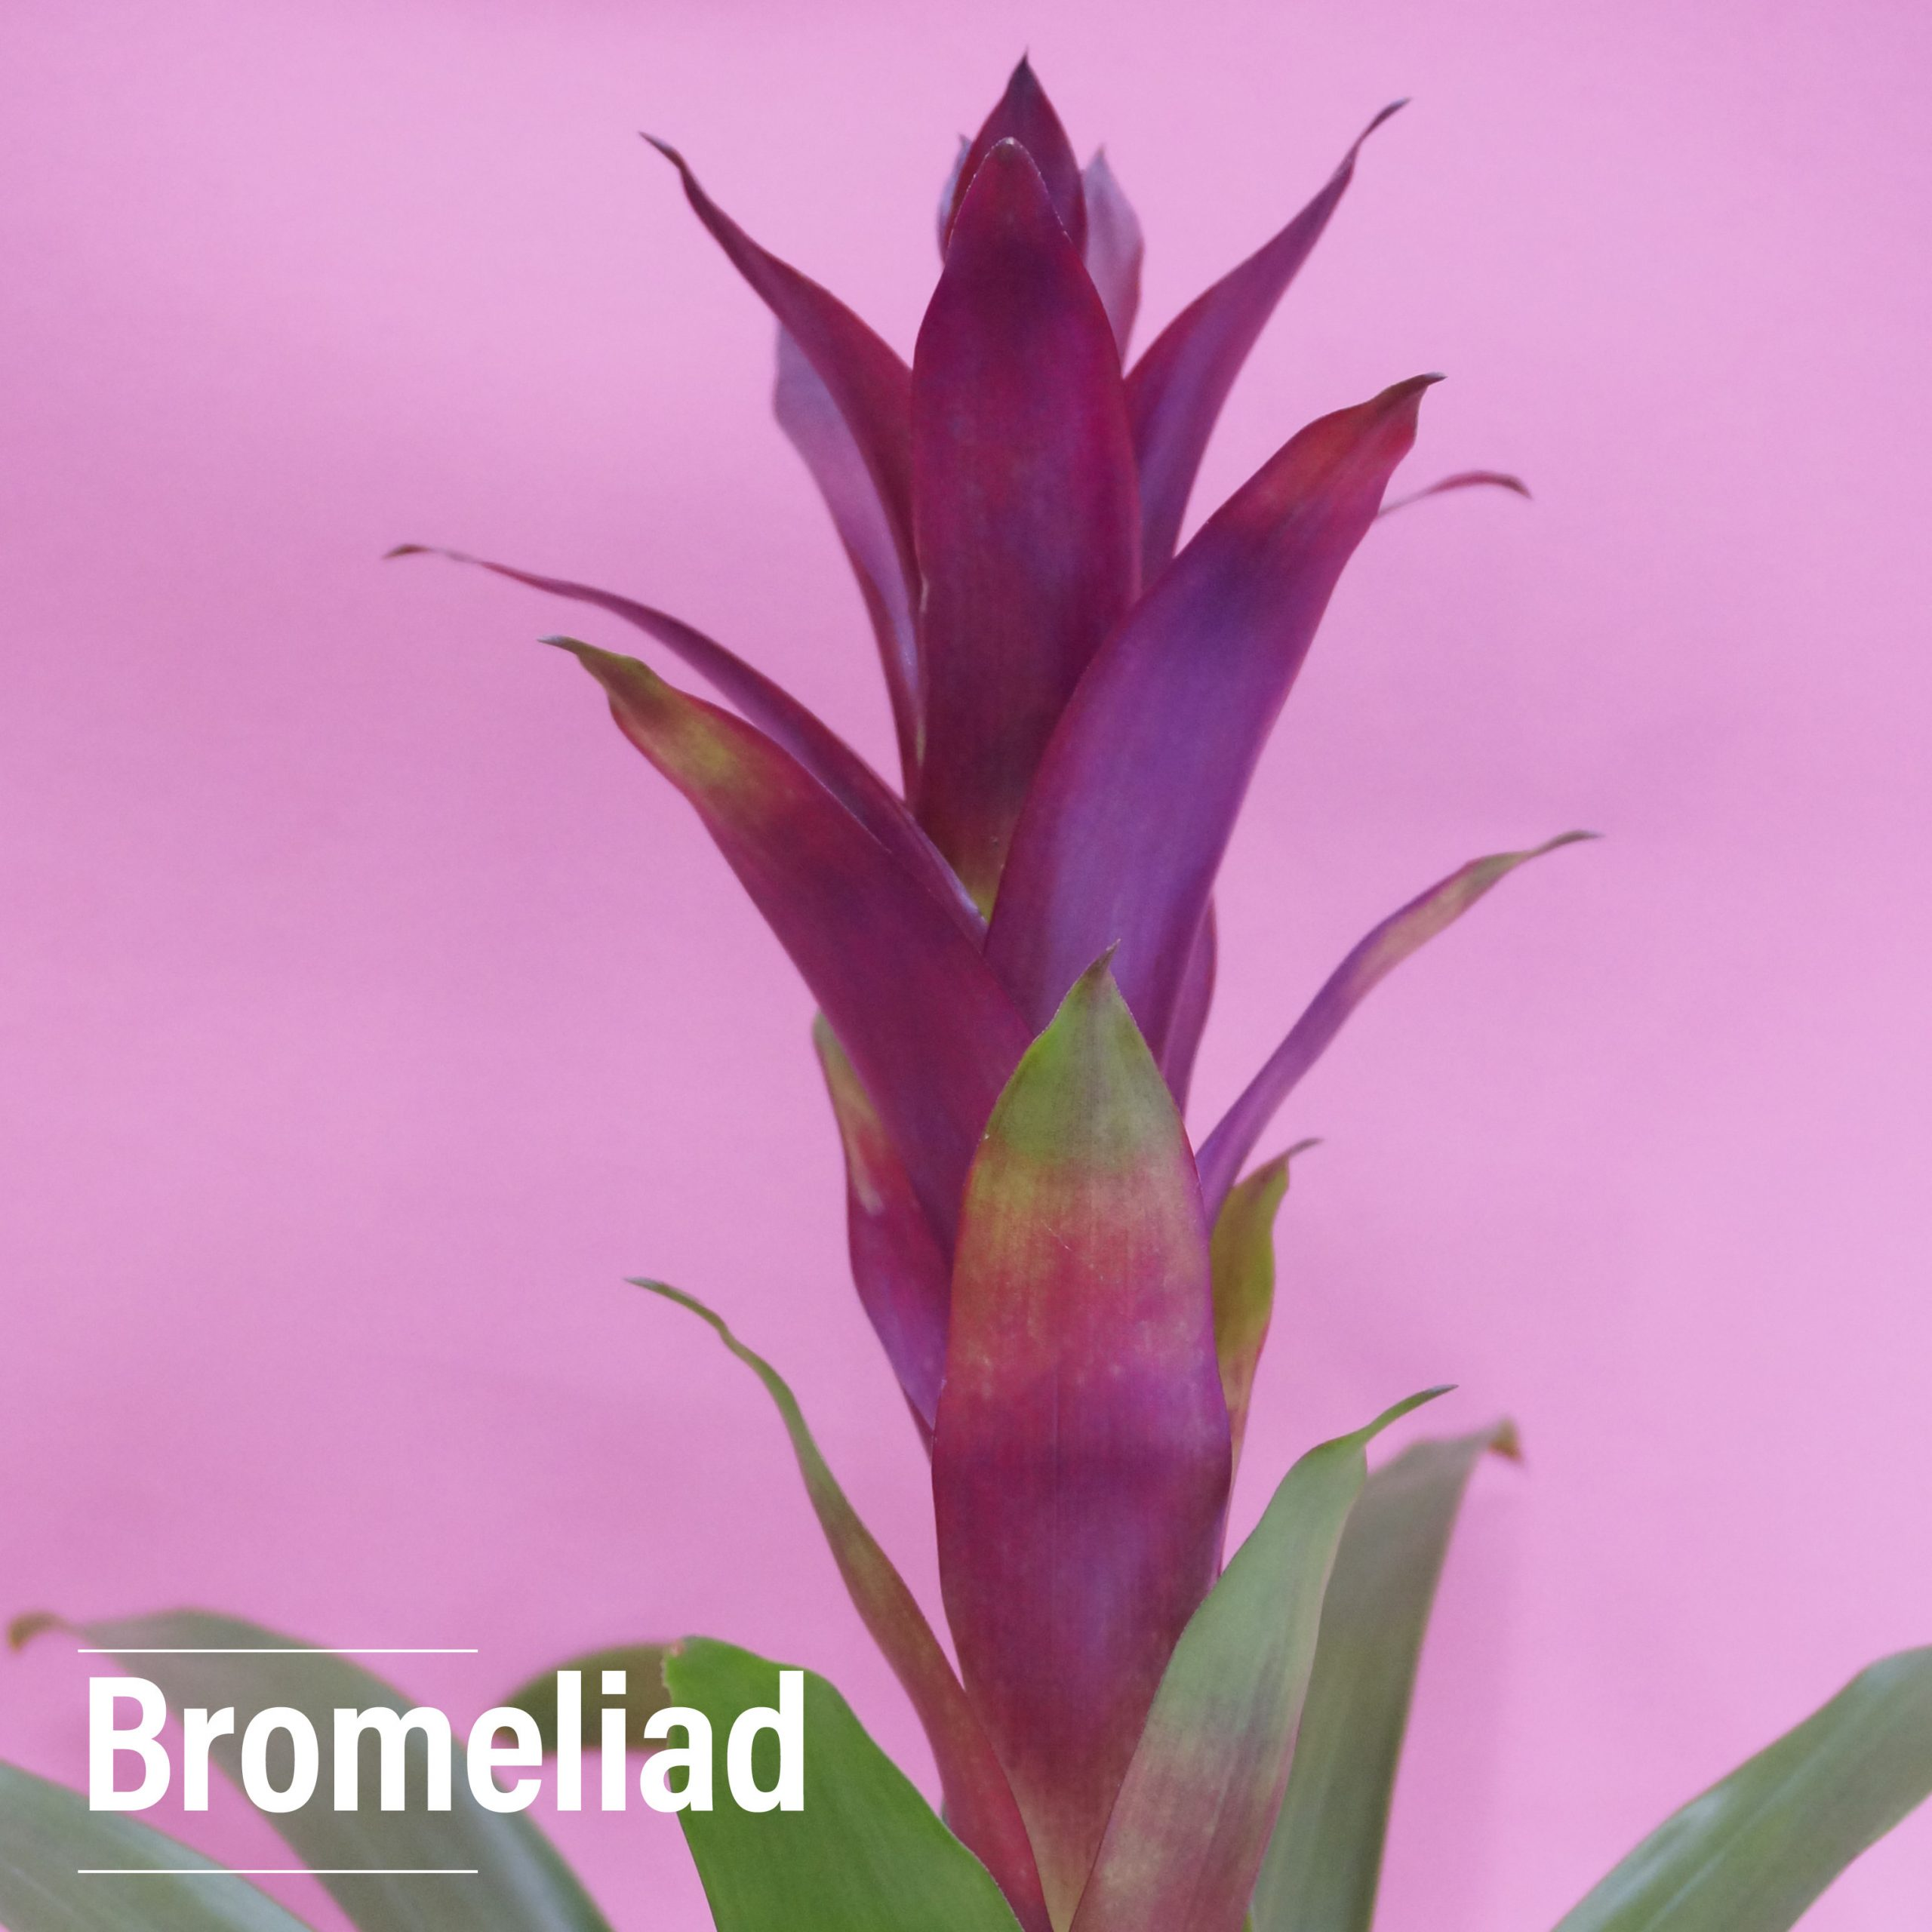 Bromeliads are available on our Blooming rotation